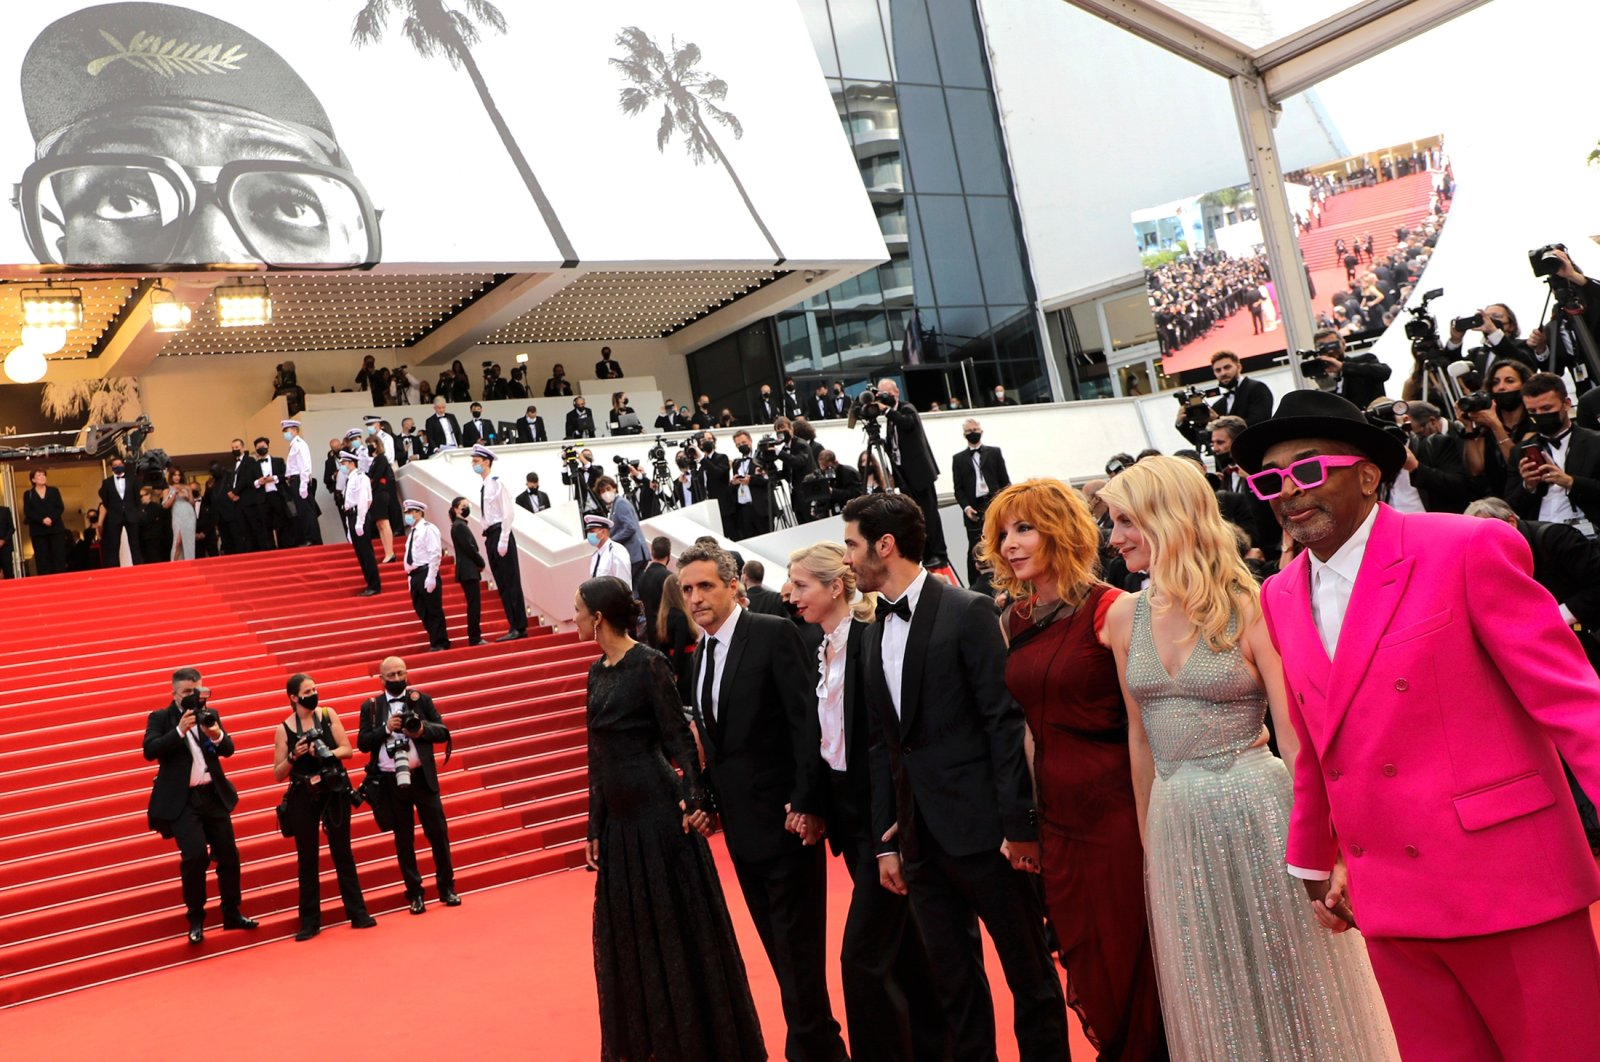 From left, jury members Mati Diop, Kleber Mendonca Filho, Jessica Hausner, Tahar Rahim, Mylene Farmer, Melanie Laurent, and Spike Lee pose for photographers upon arrival at the opening ceremony of the 74th international film festival, Cannes, southern France, July 6, 2021. (AP Photo)